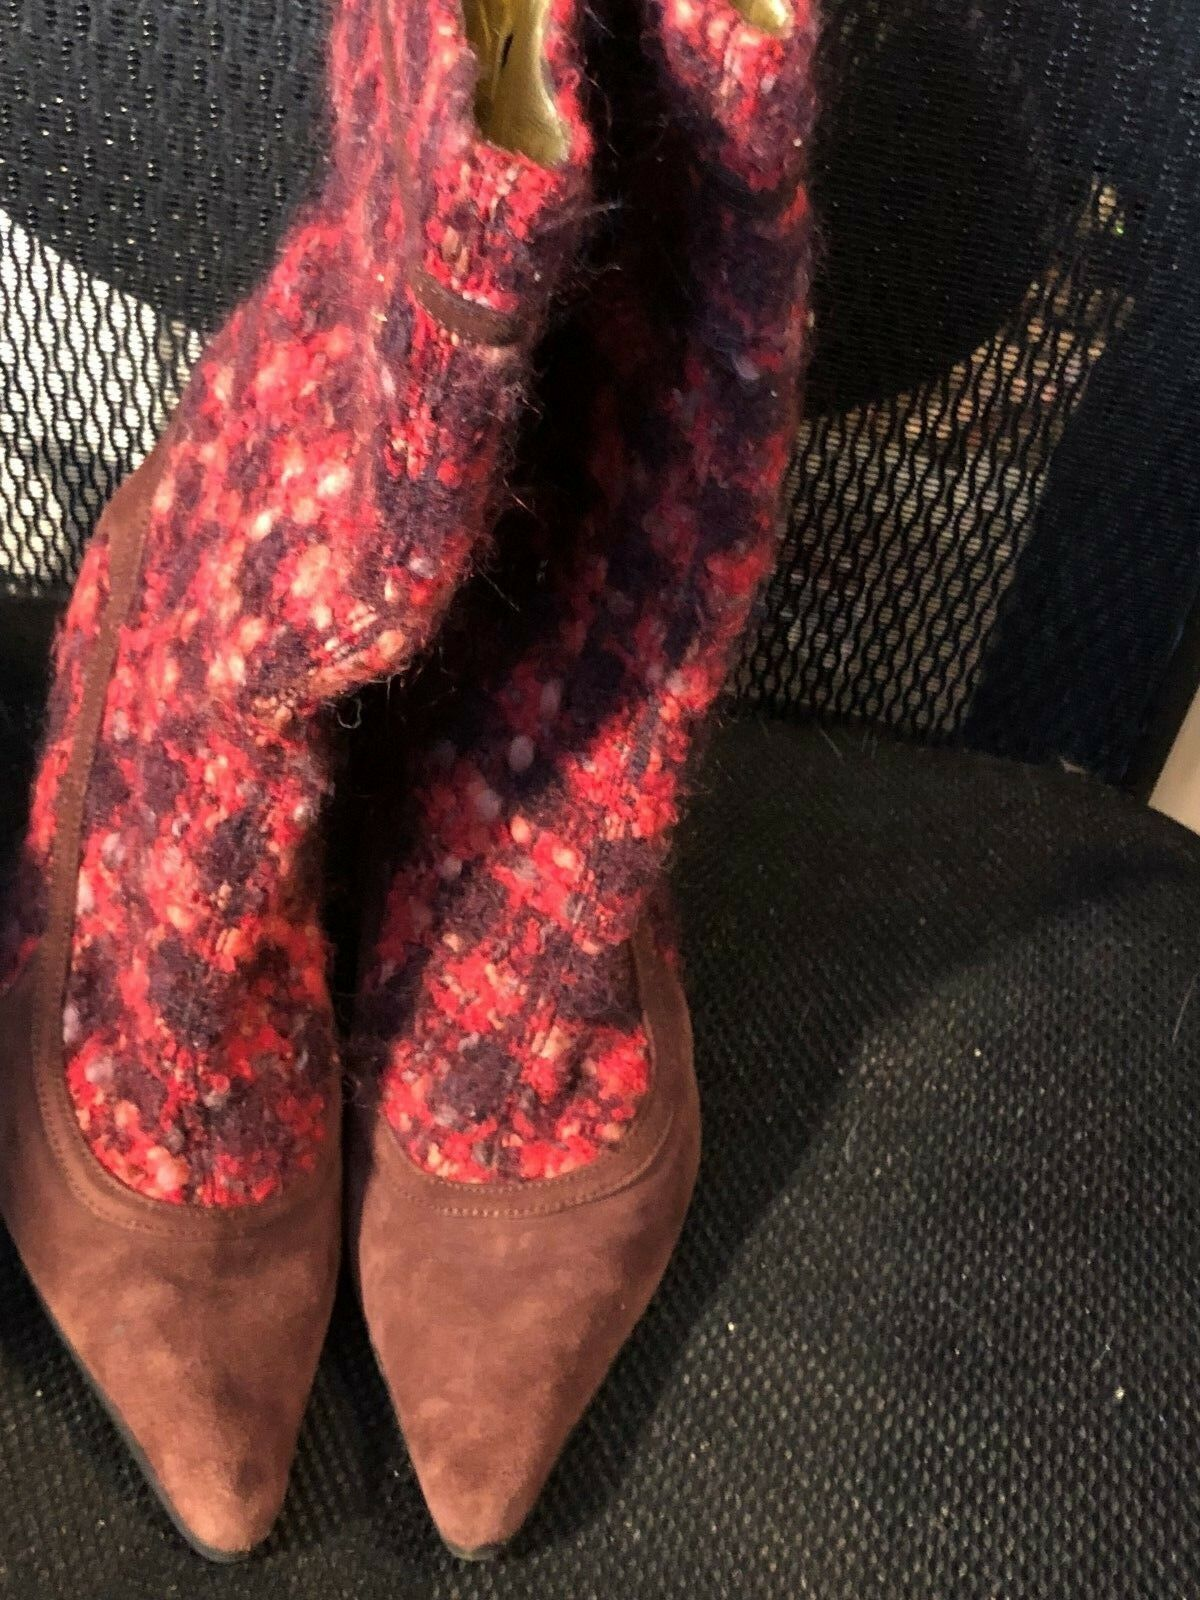 Boots, DOLCE & CABBANA, red tweed/choc brn suede, 4